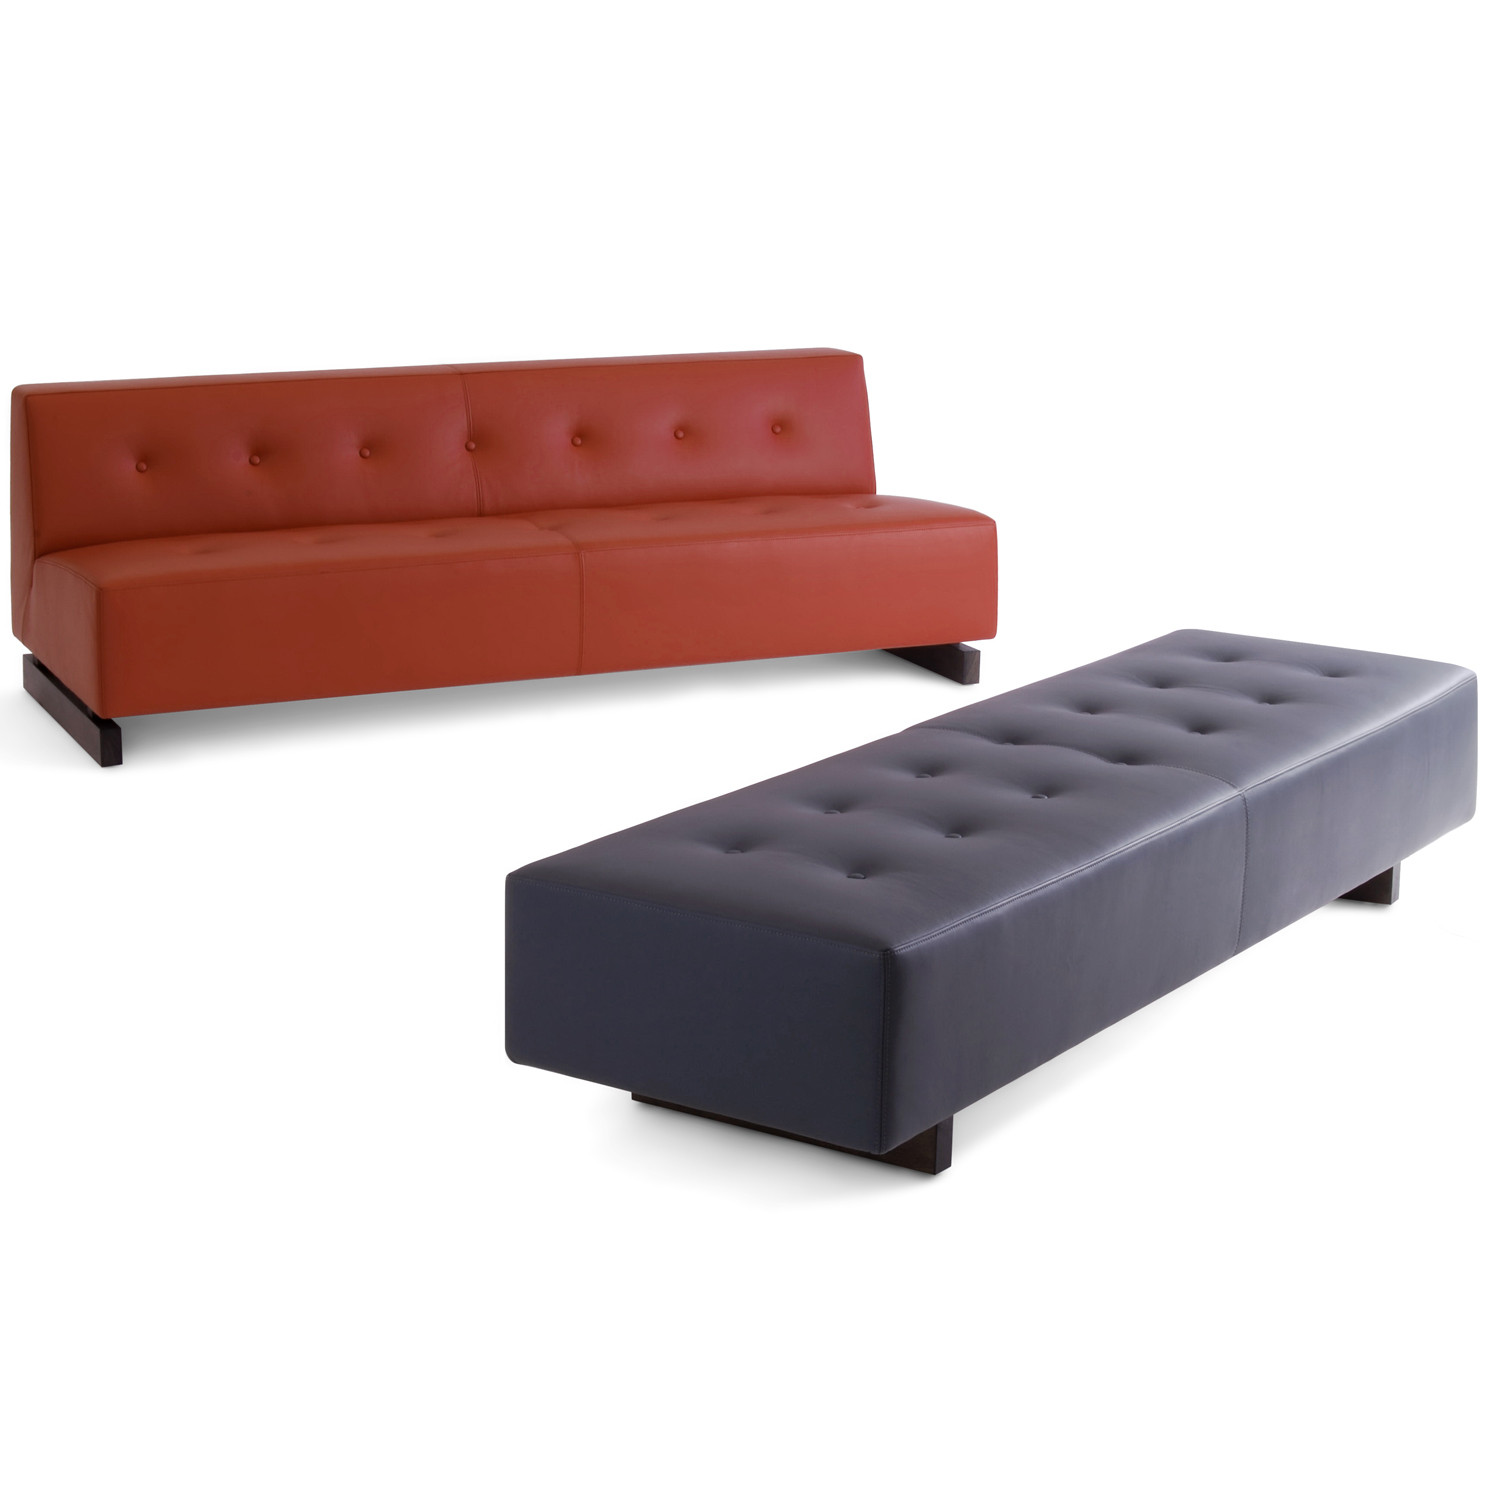 HM46o and HM46t Modular Soft Seating Units in Leather